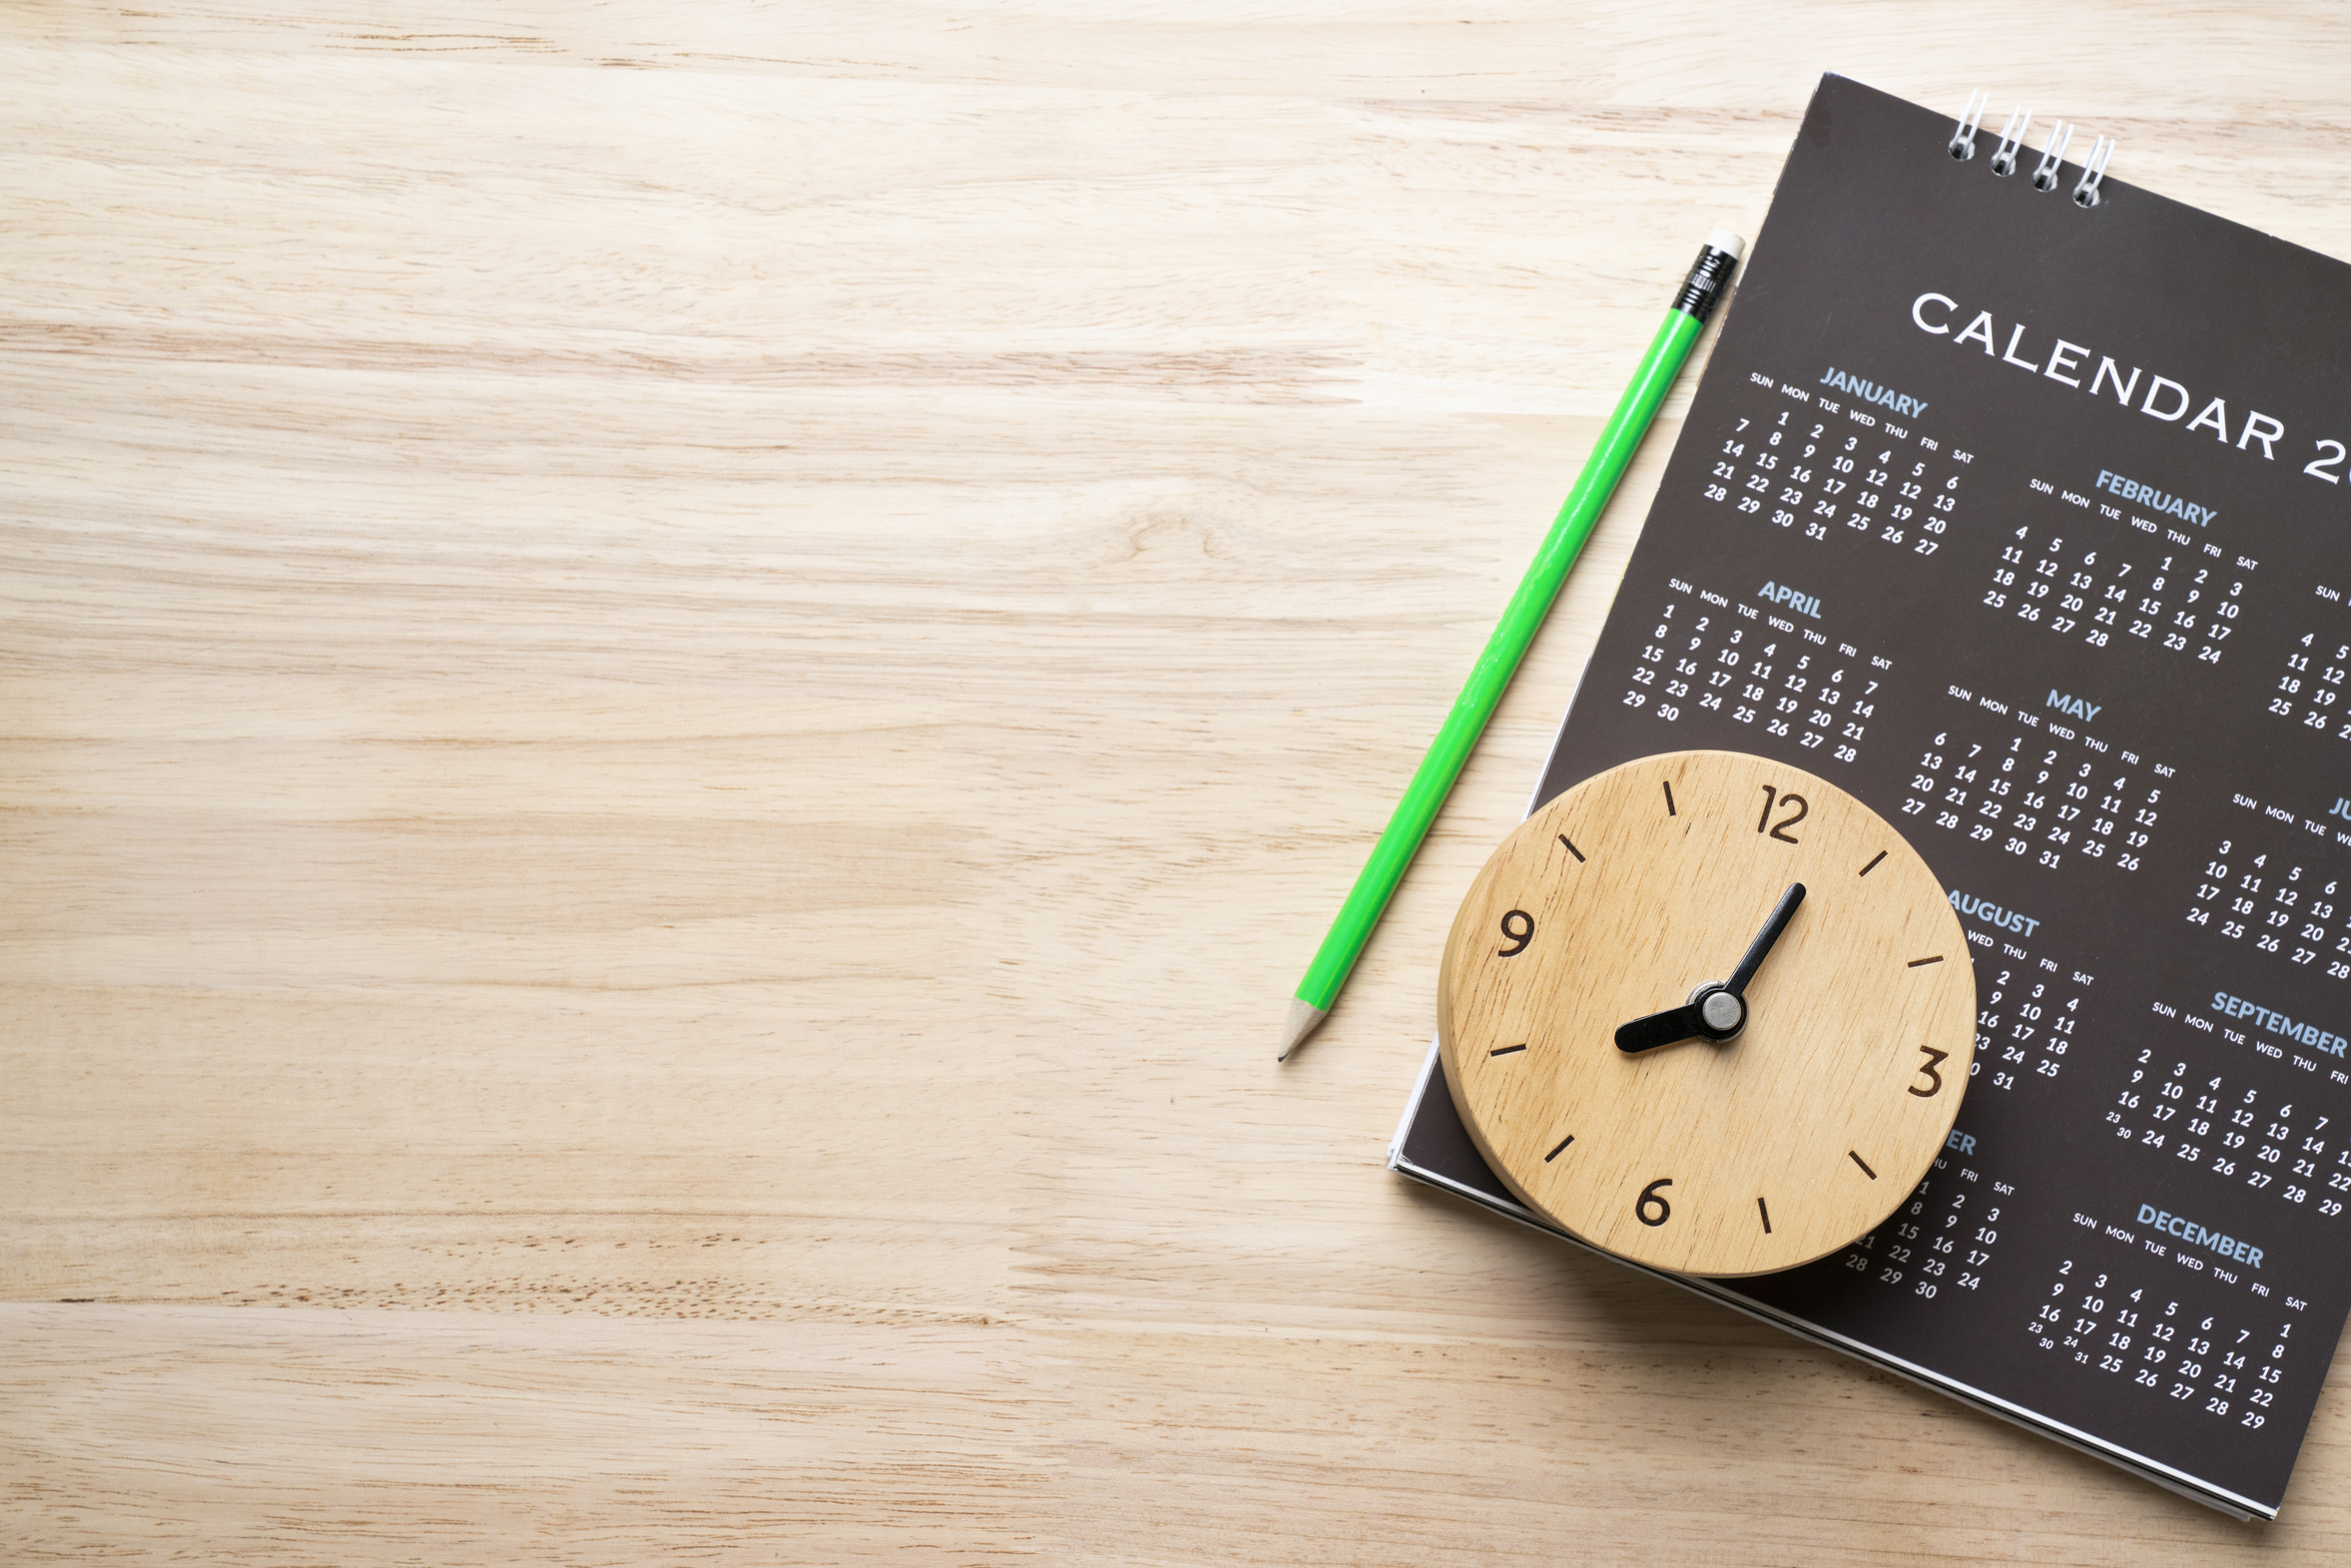 close up of calendar, pencil and clock on the table, planning for business meeting or travel planning concept